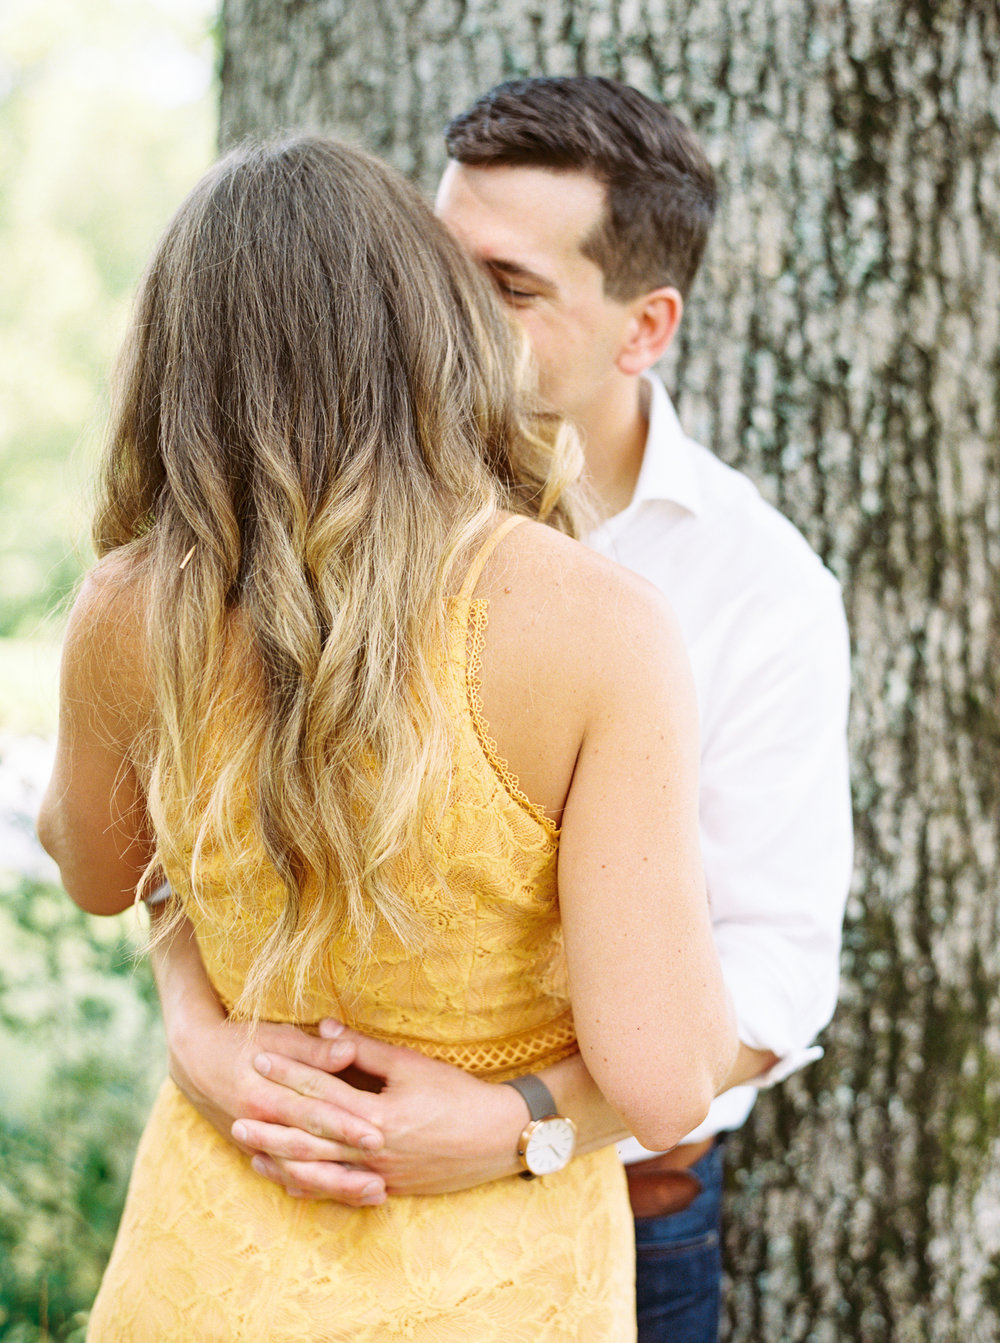 Biltmore-Estate-Engagment-Session-in-Asheville-NC-3.jpg